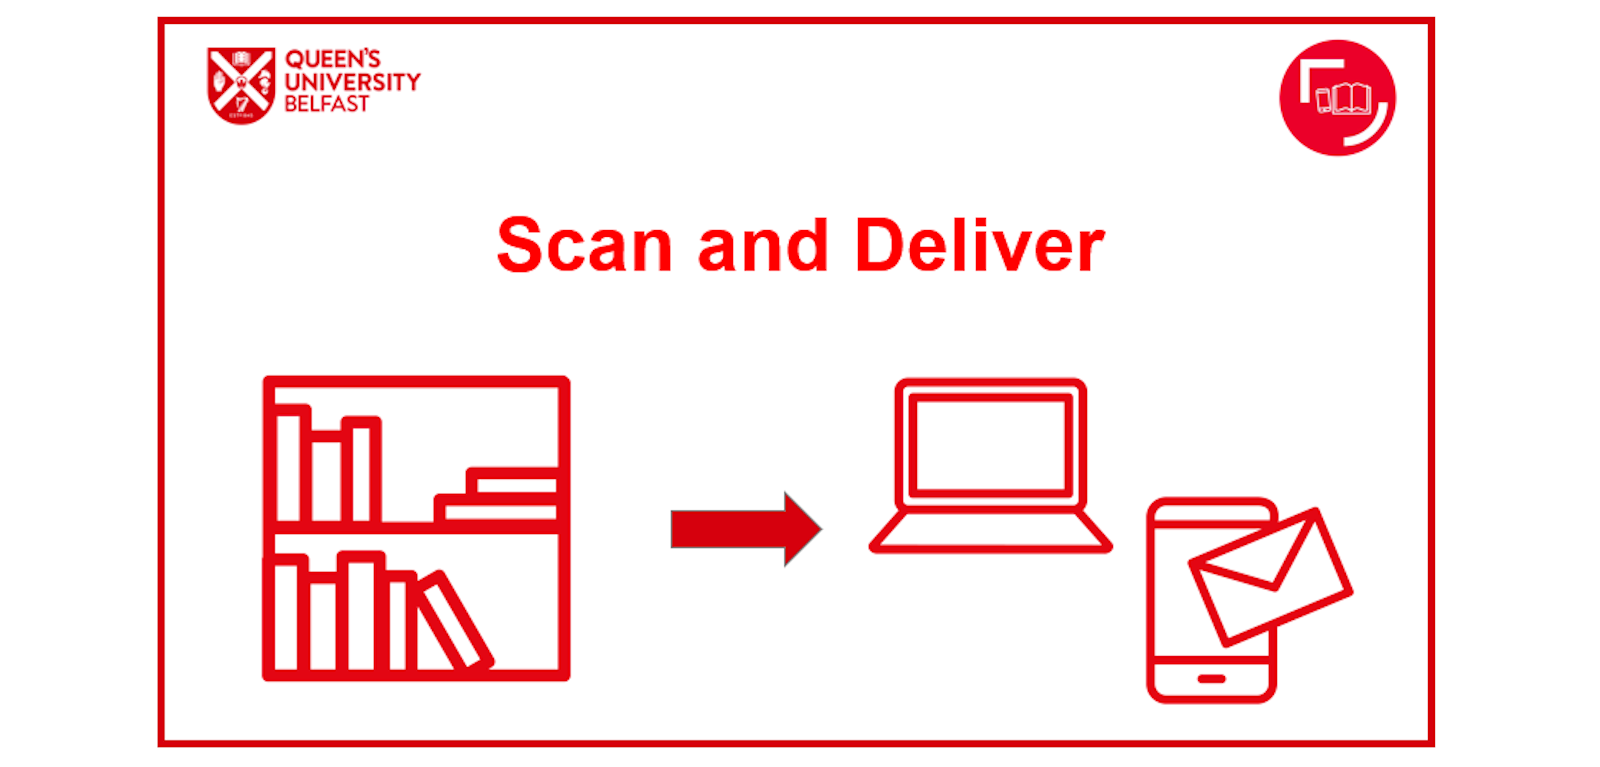 Poster describing scan and deliver service